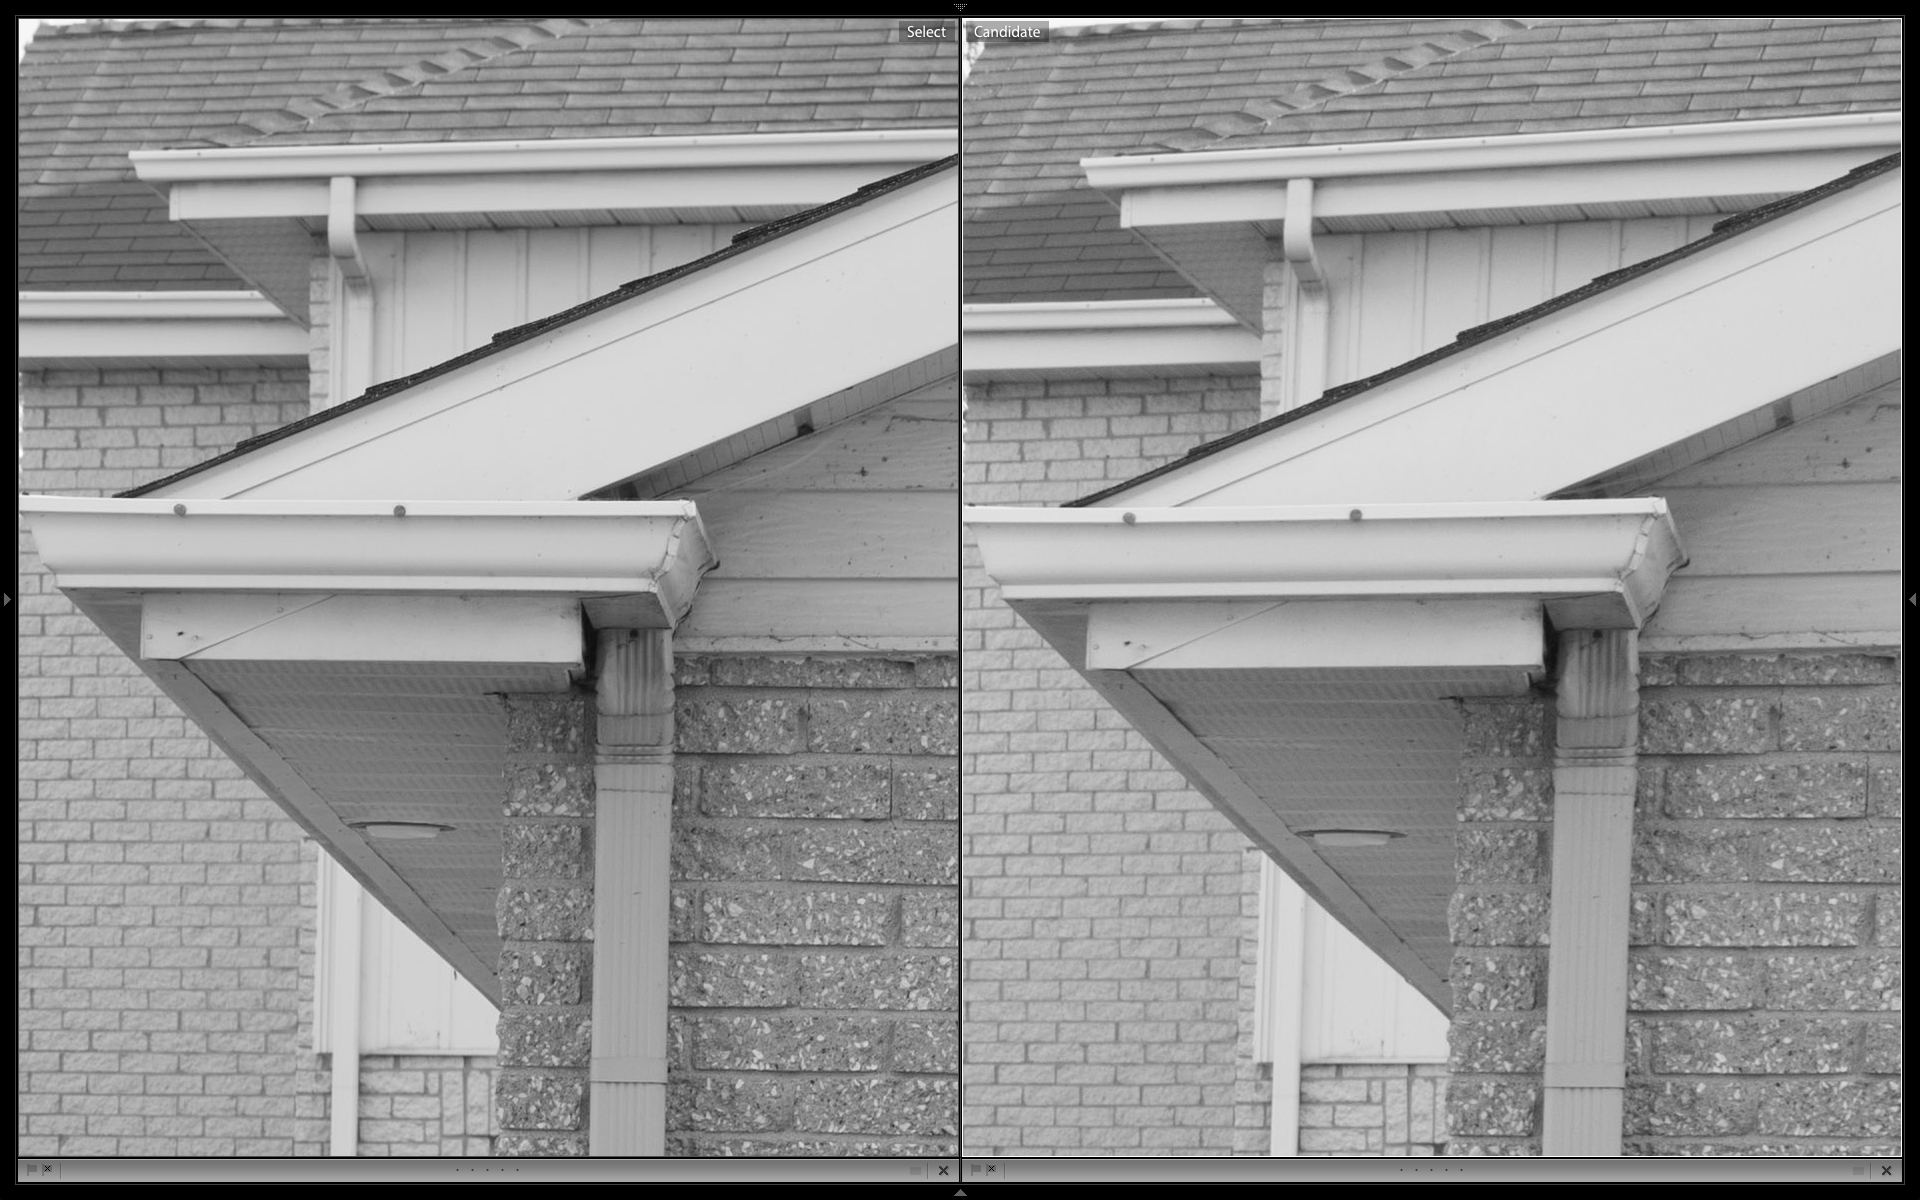 Zeiss 50mm left, 24-85VR right.